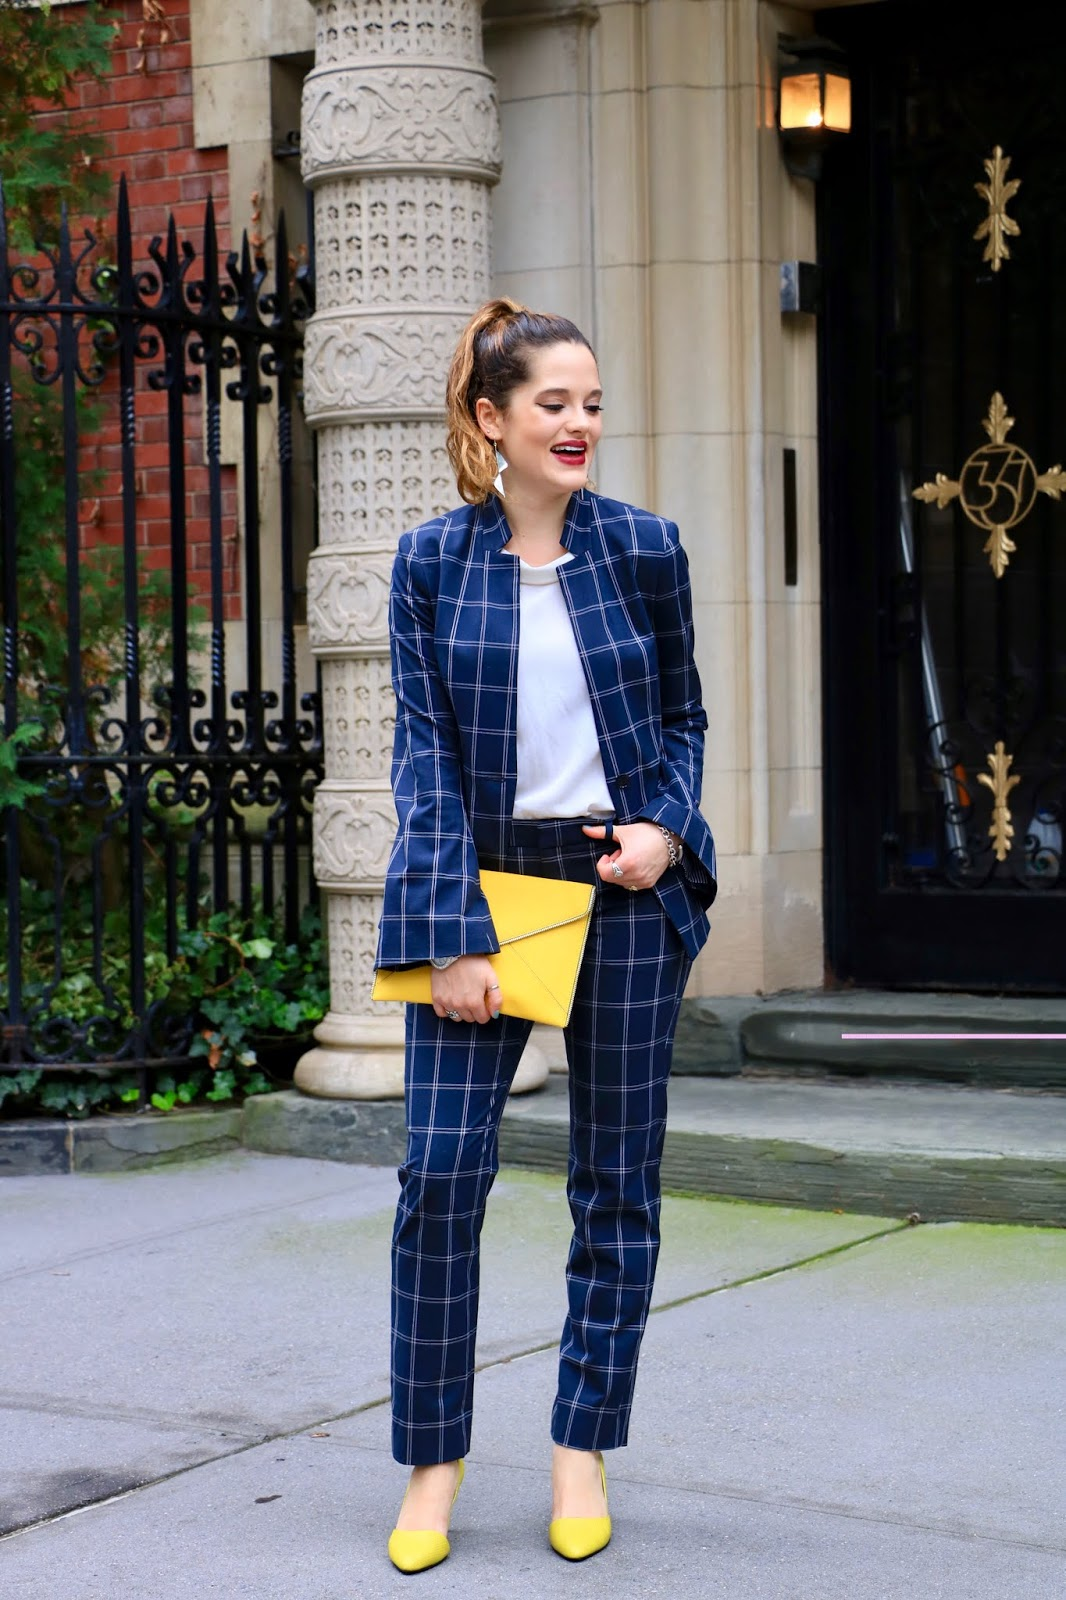 Nyc fashion blogger Kathleen Harper showing how to wear plaid